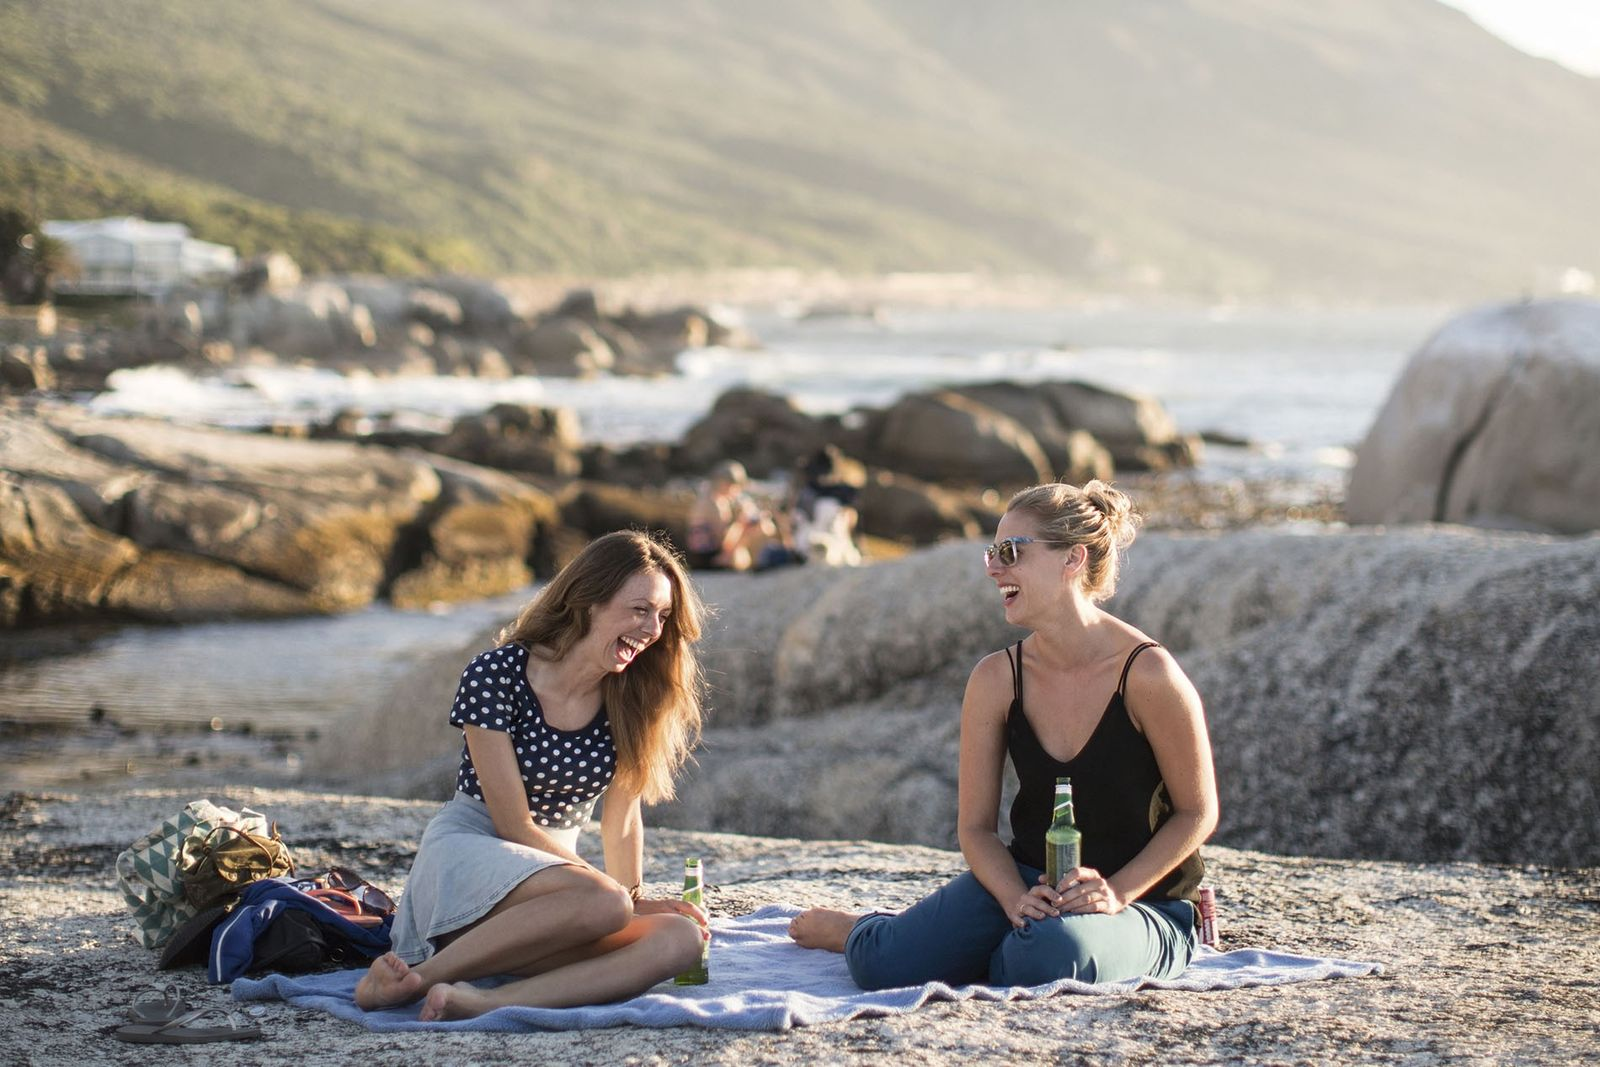 Cape Town: through the eyes of travel writers